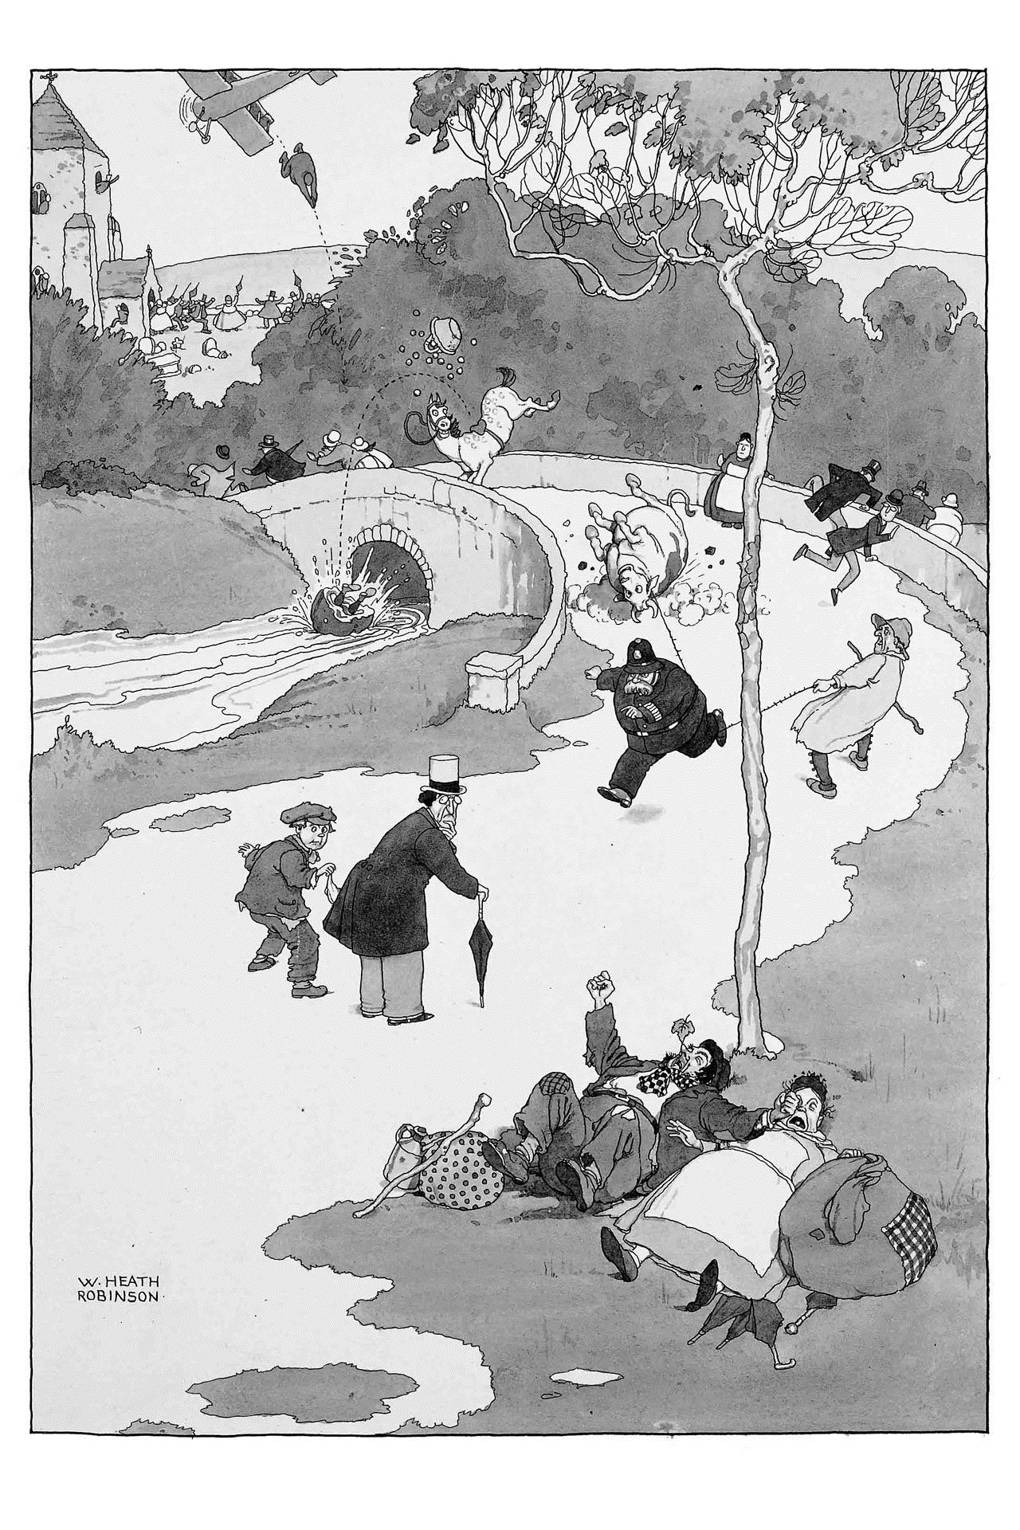 Heath Robinson: the unsung hero of British eccentricity and